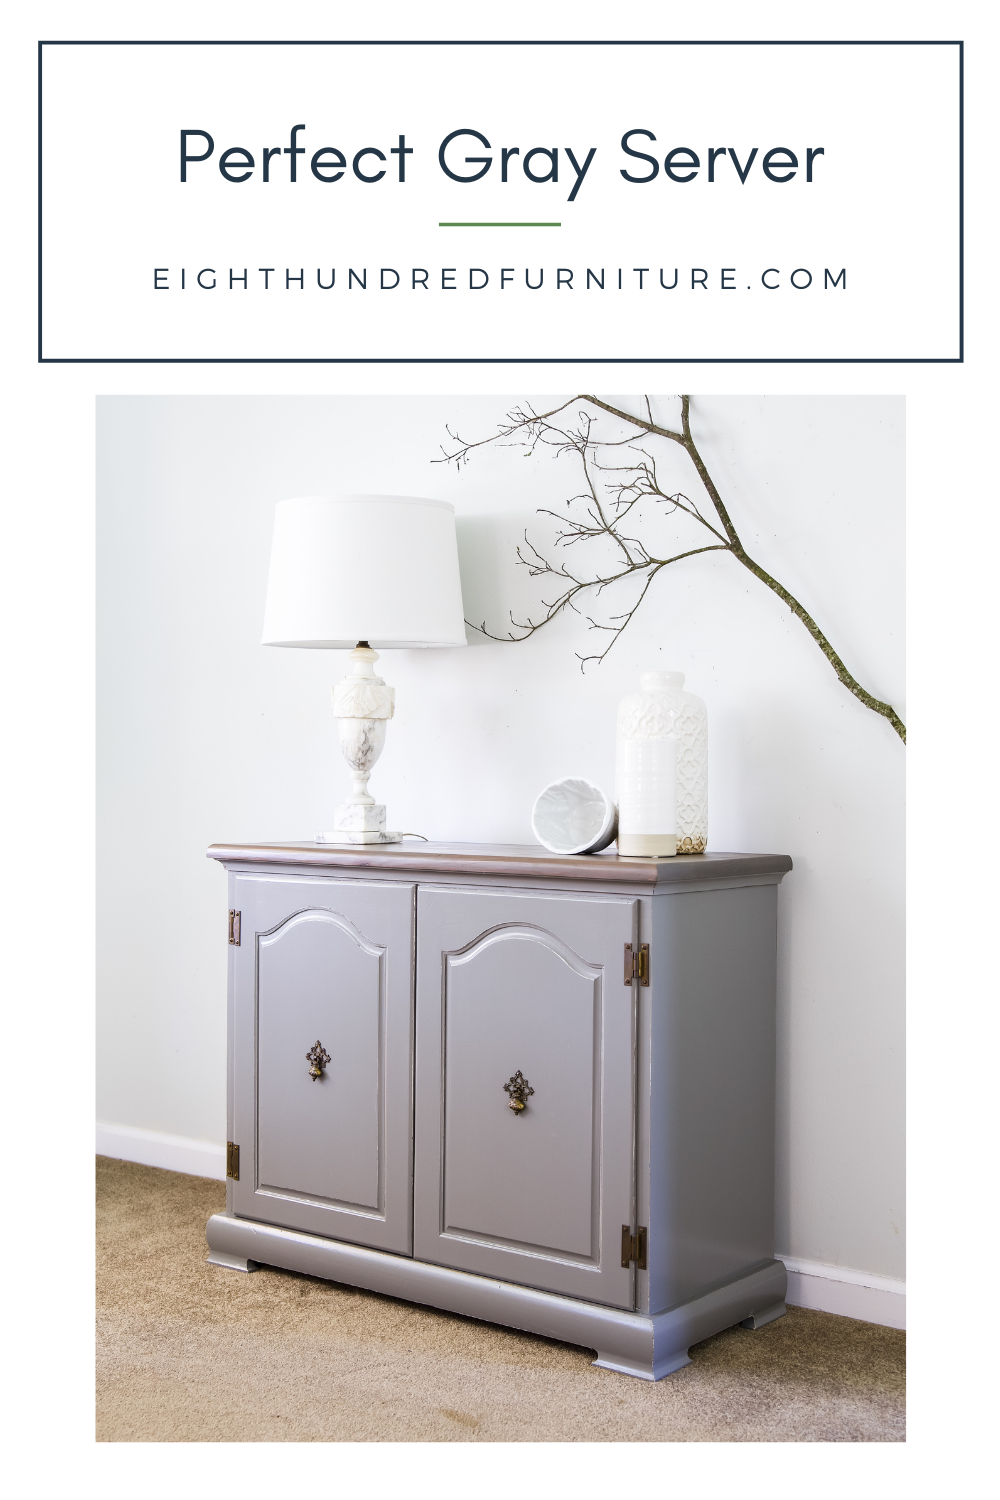 Server painted in Perfect Gray Milk Paint by General Finishes